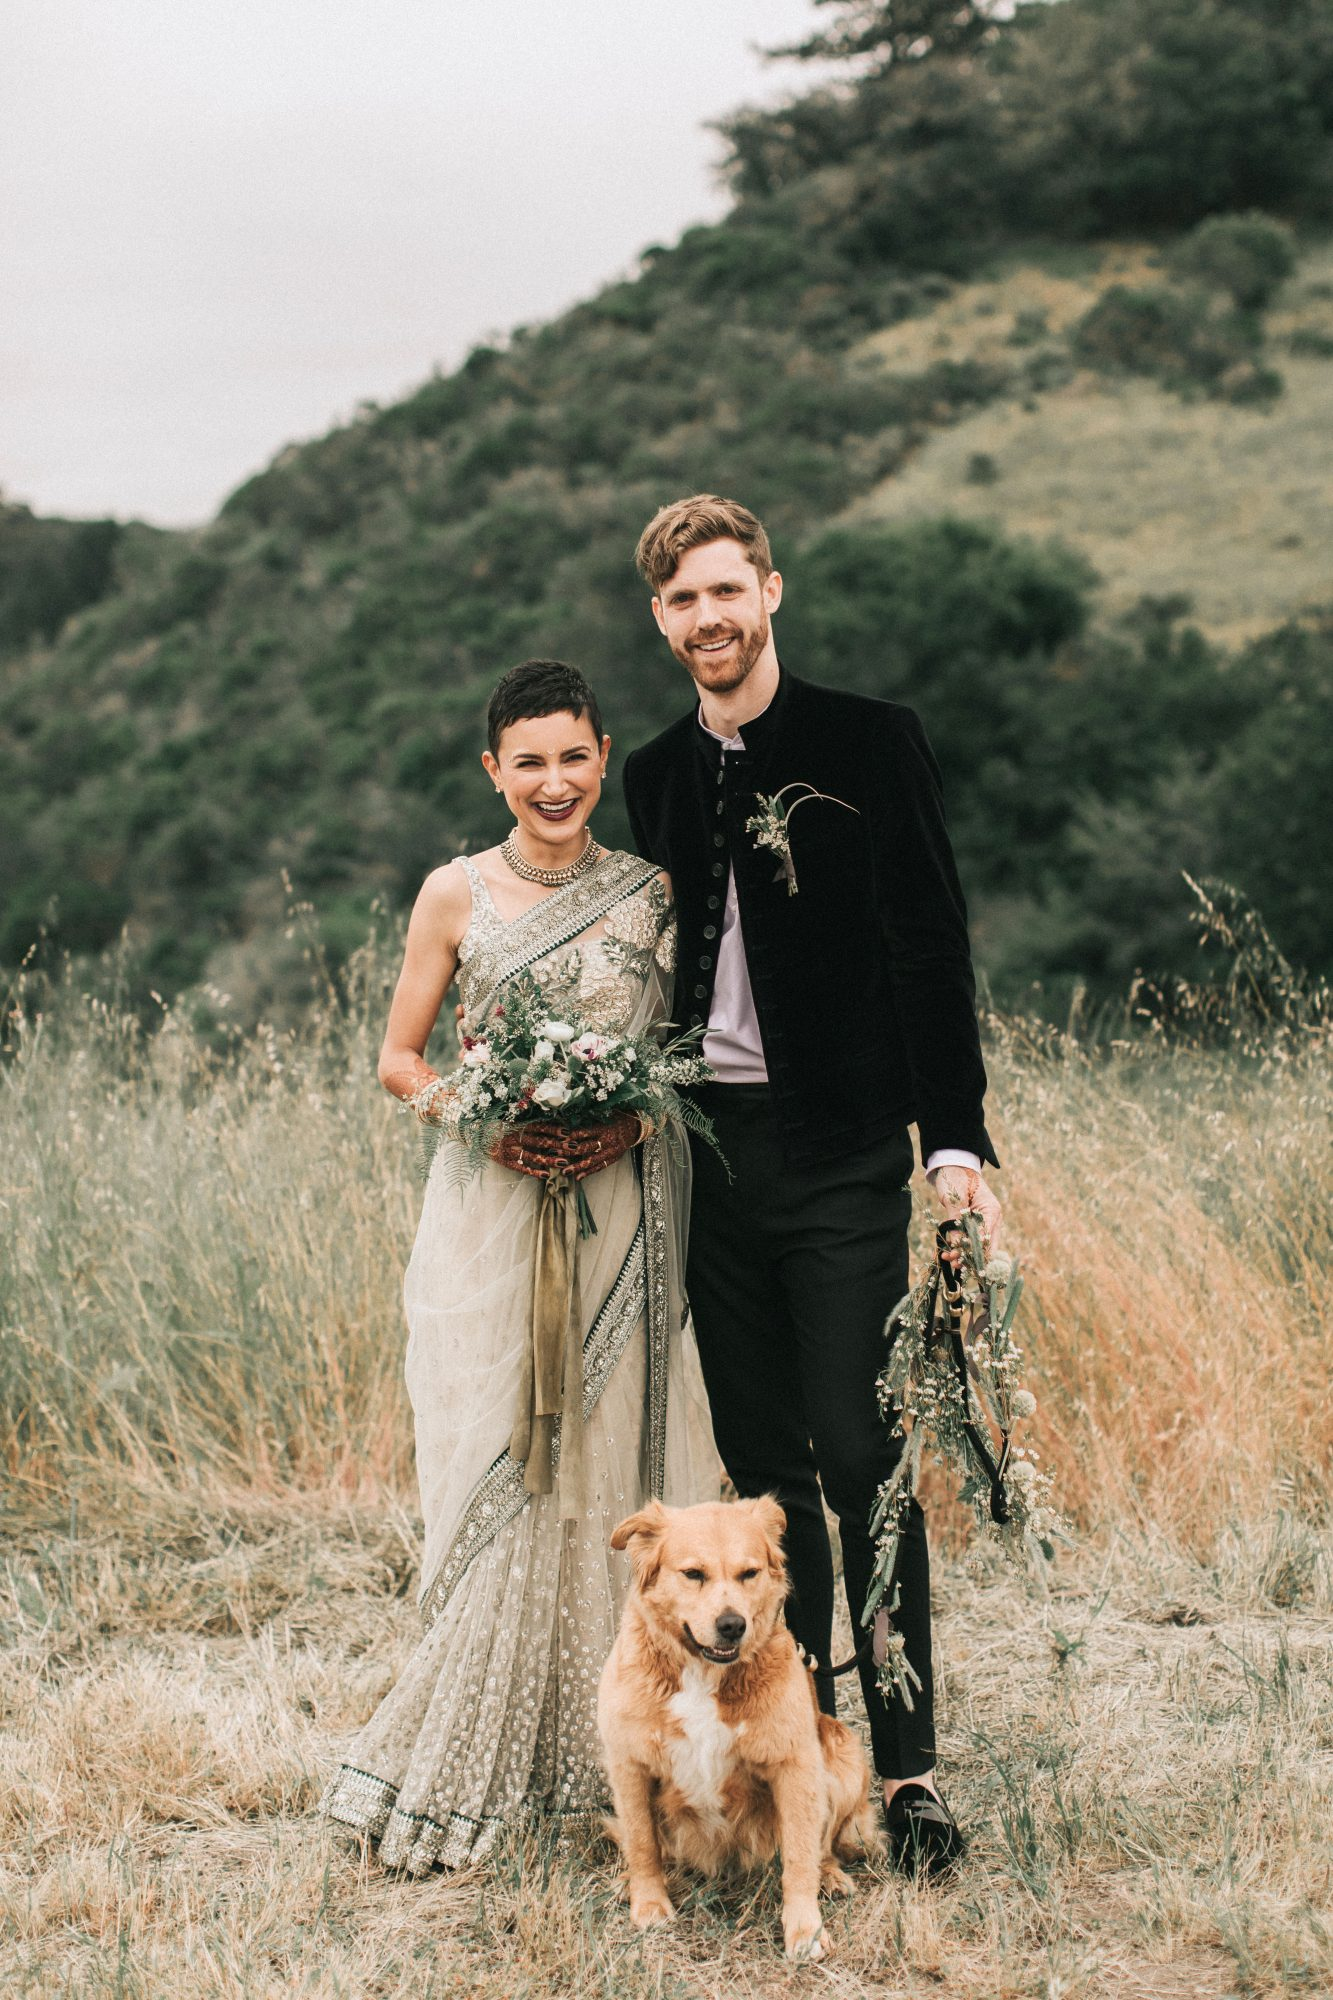 zai phil camping wedding couple dog